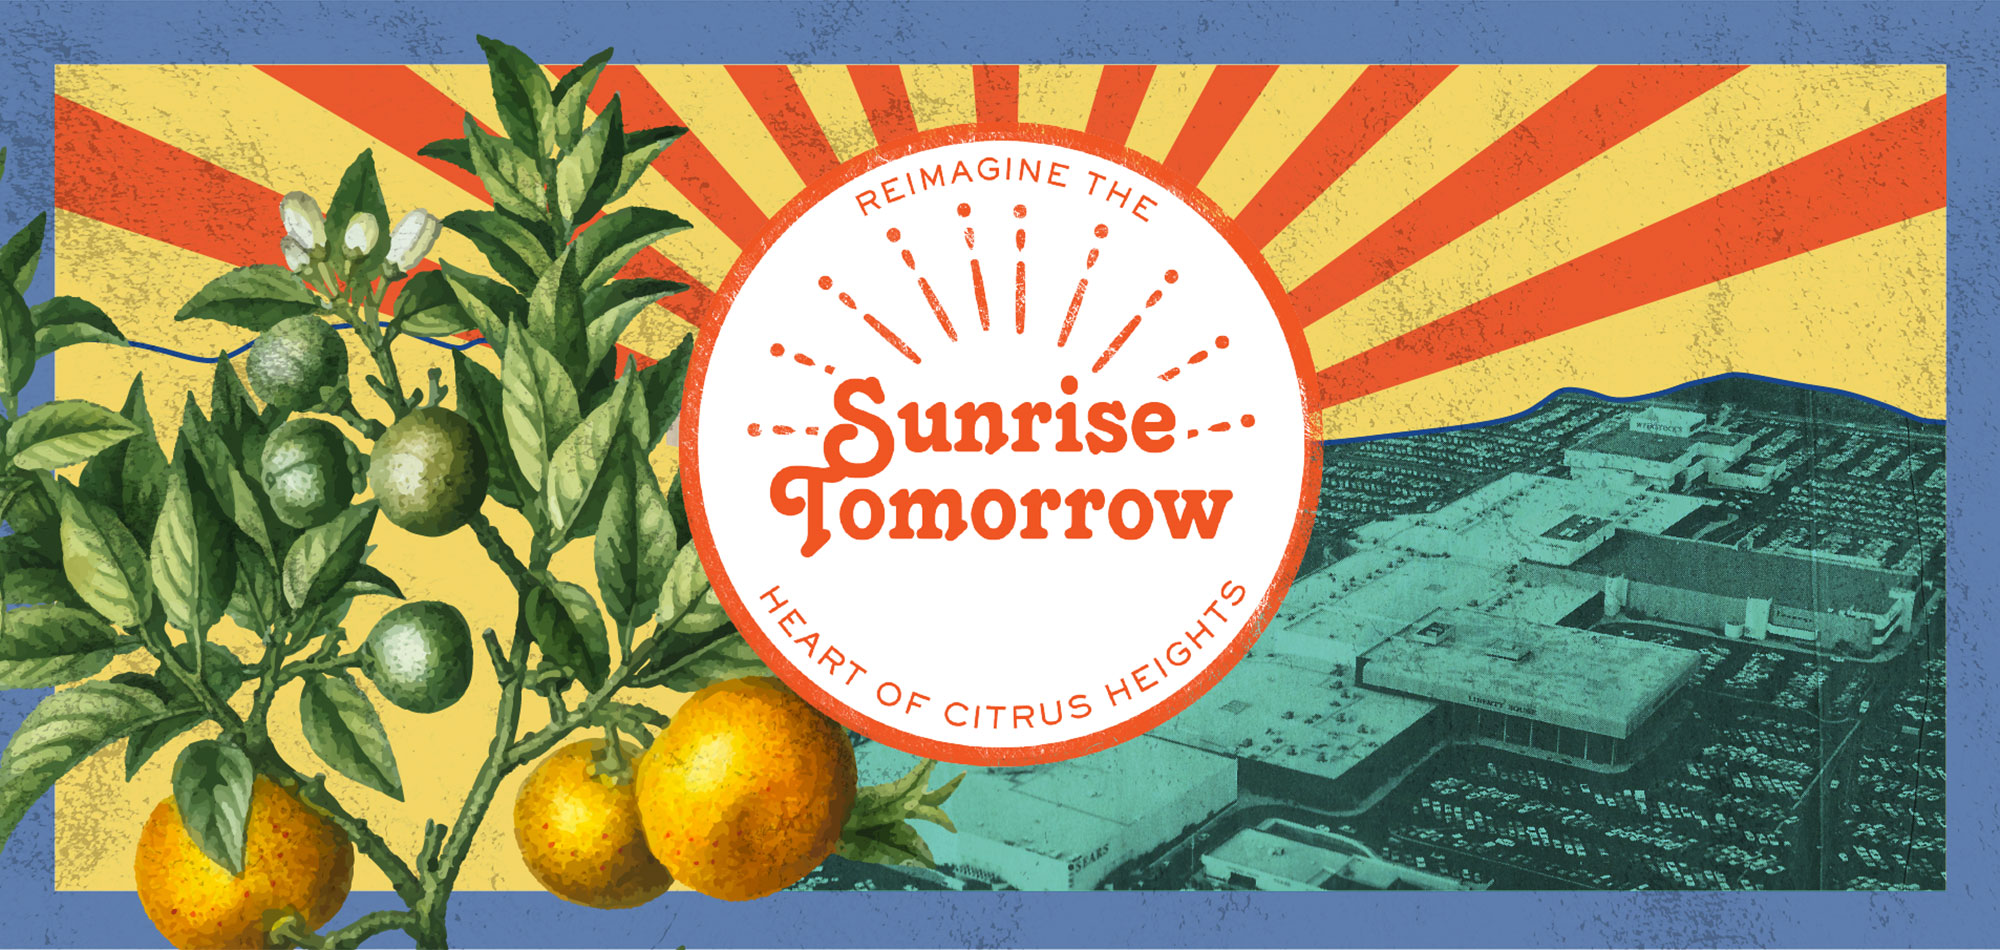 Branding for the Sunrise Tomorrow project